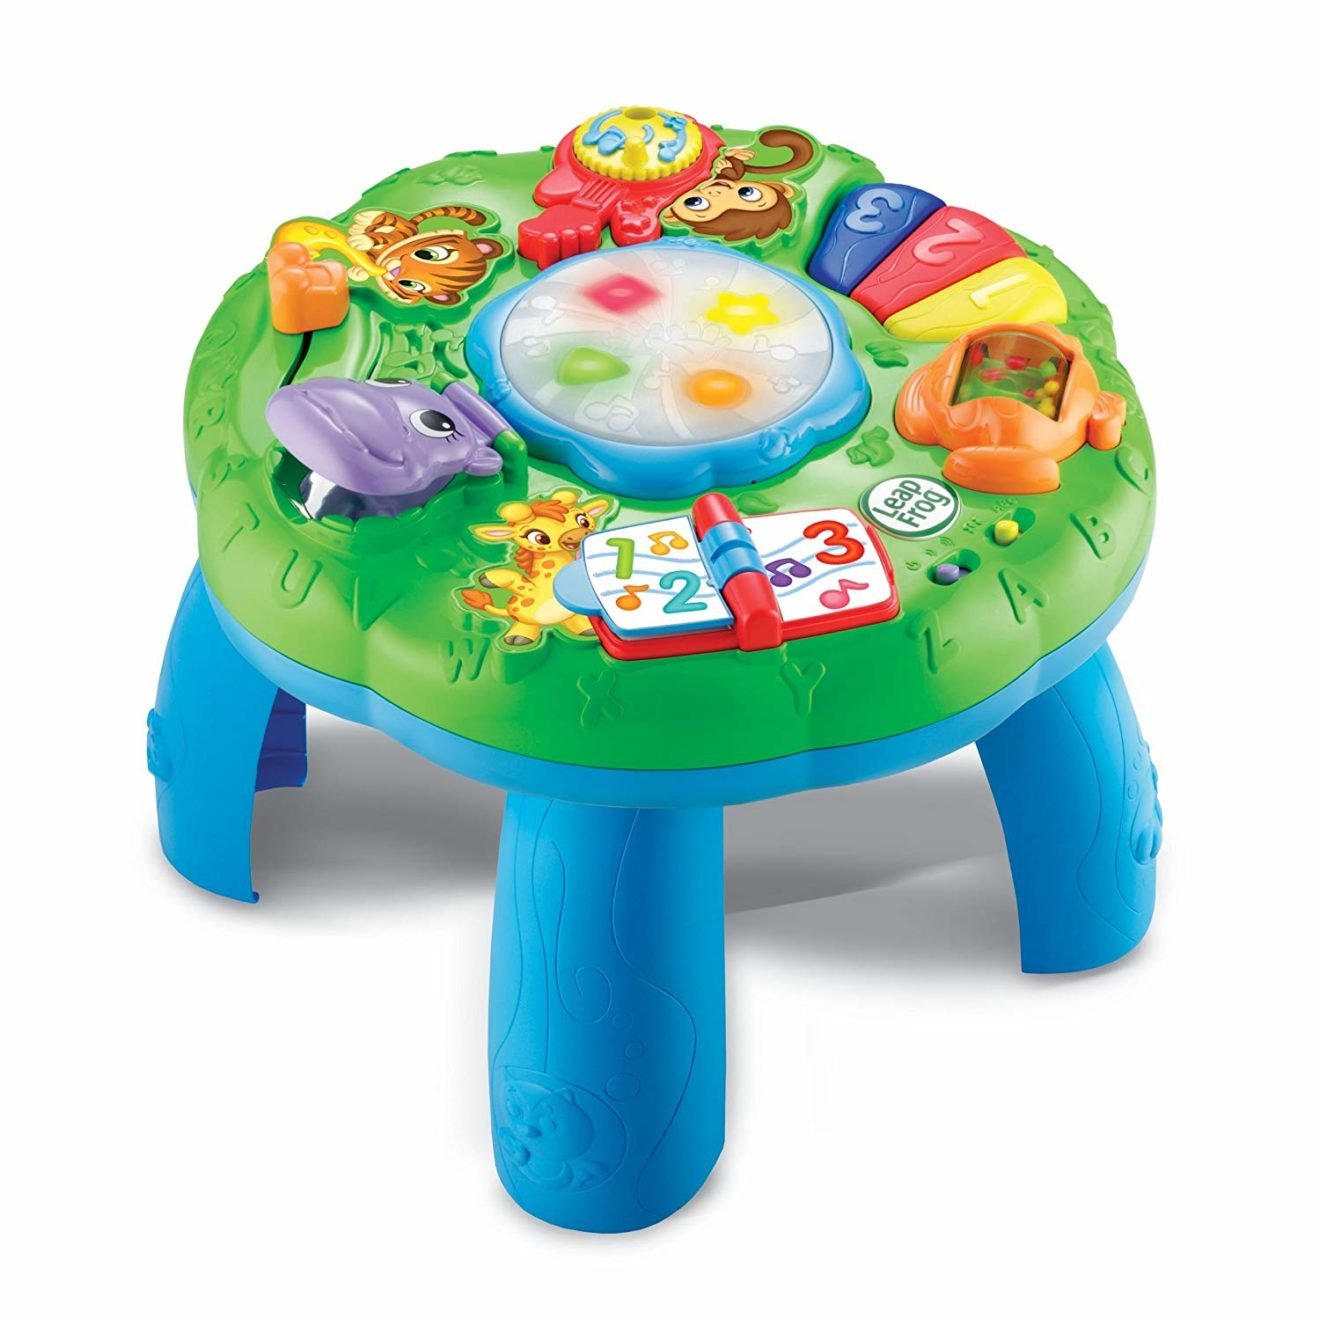 Table-eveil-musical-des-animaux-leapfrog